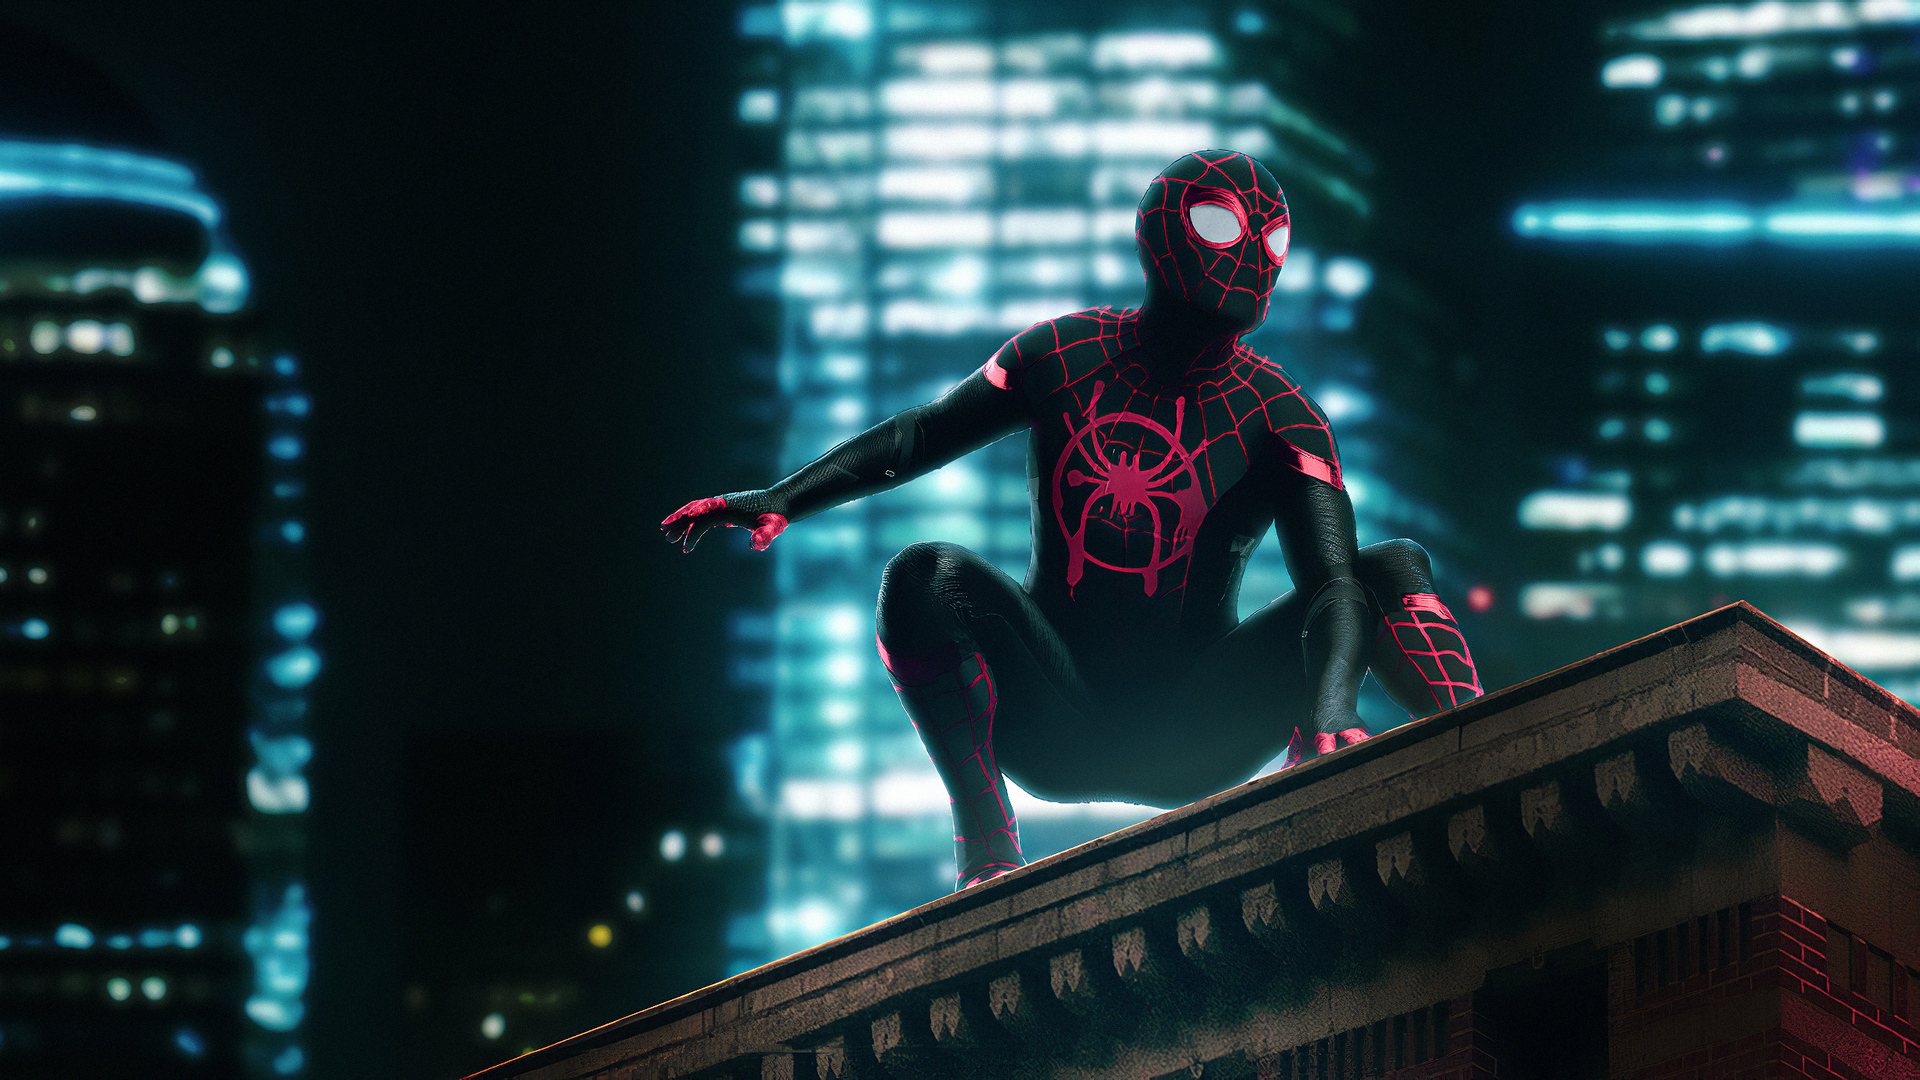 1920x1080 Spider Man Neon Laptop Full Hd 1080p Hd 4k Wallpapers Images Backgrounds Photos And Pictures